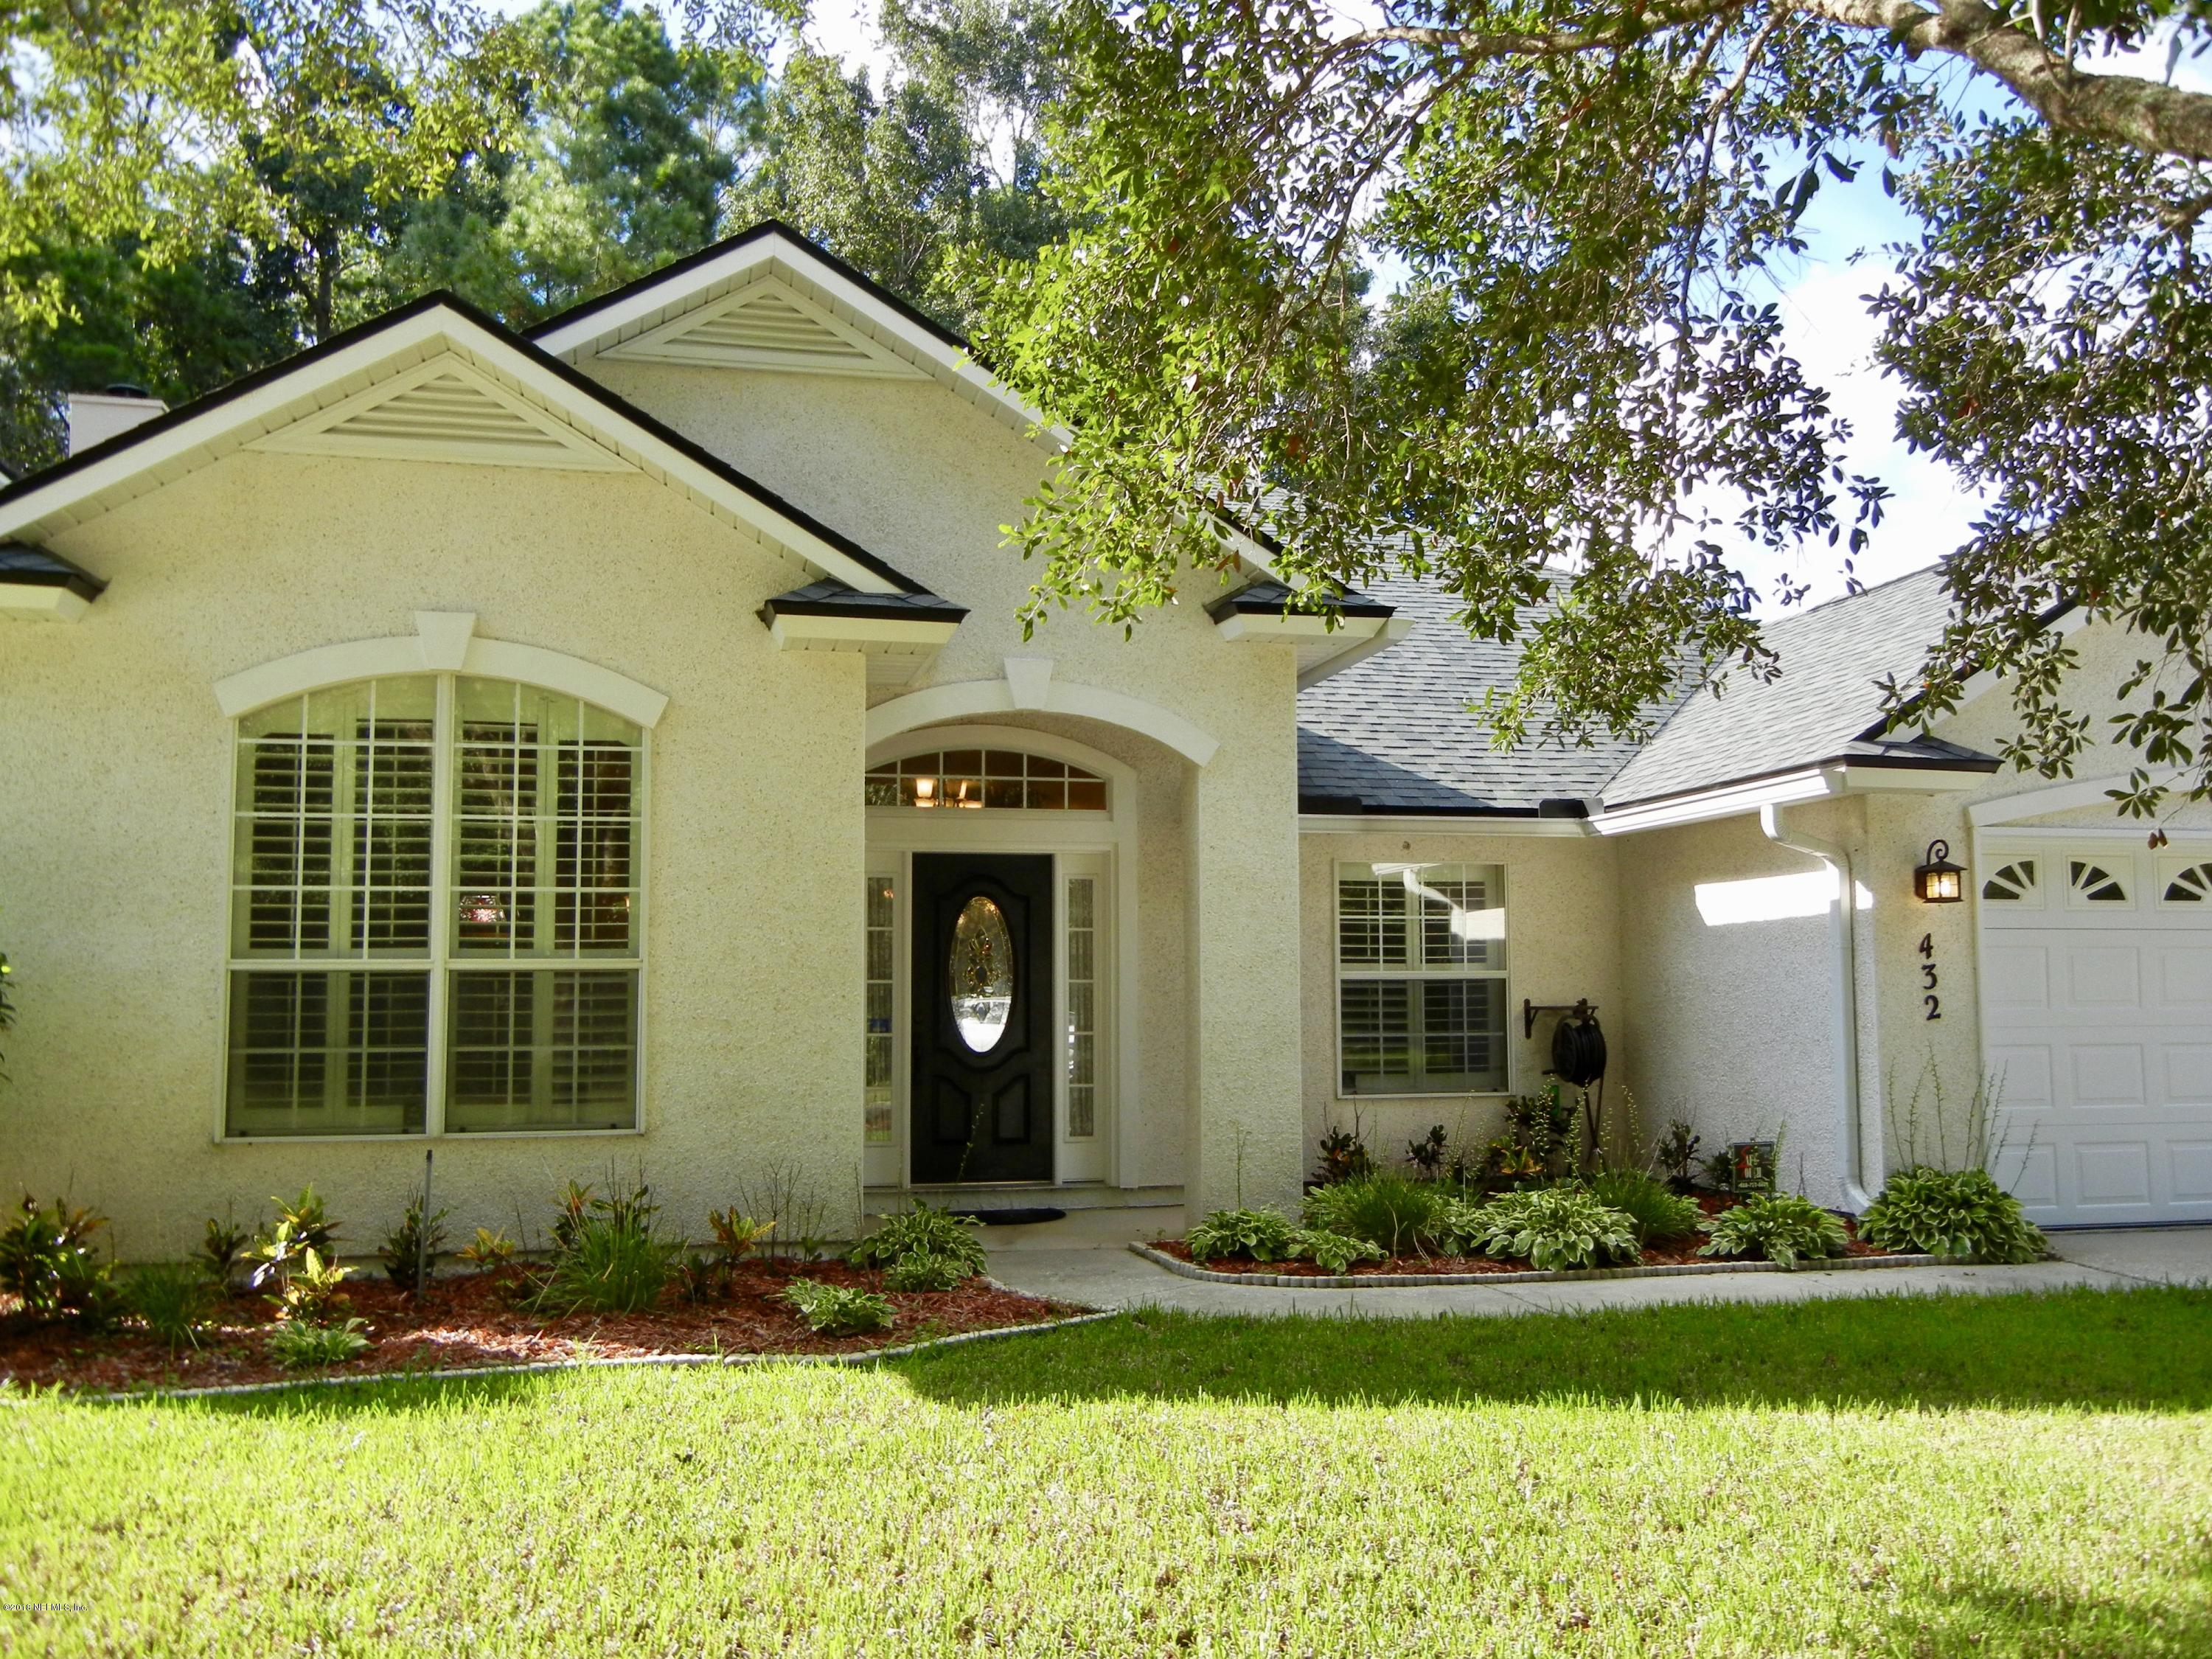 432 BUCK BOARD, JACKSONVILLE, FLORIDA 32259, 4 Bedrooms Bedrooms, ,3 BathroomsBathrooms,Residential - single family,For sale,BUCK BOARD,957607